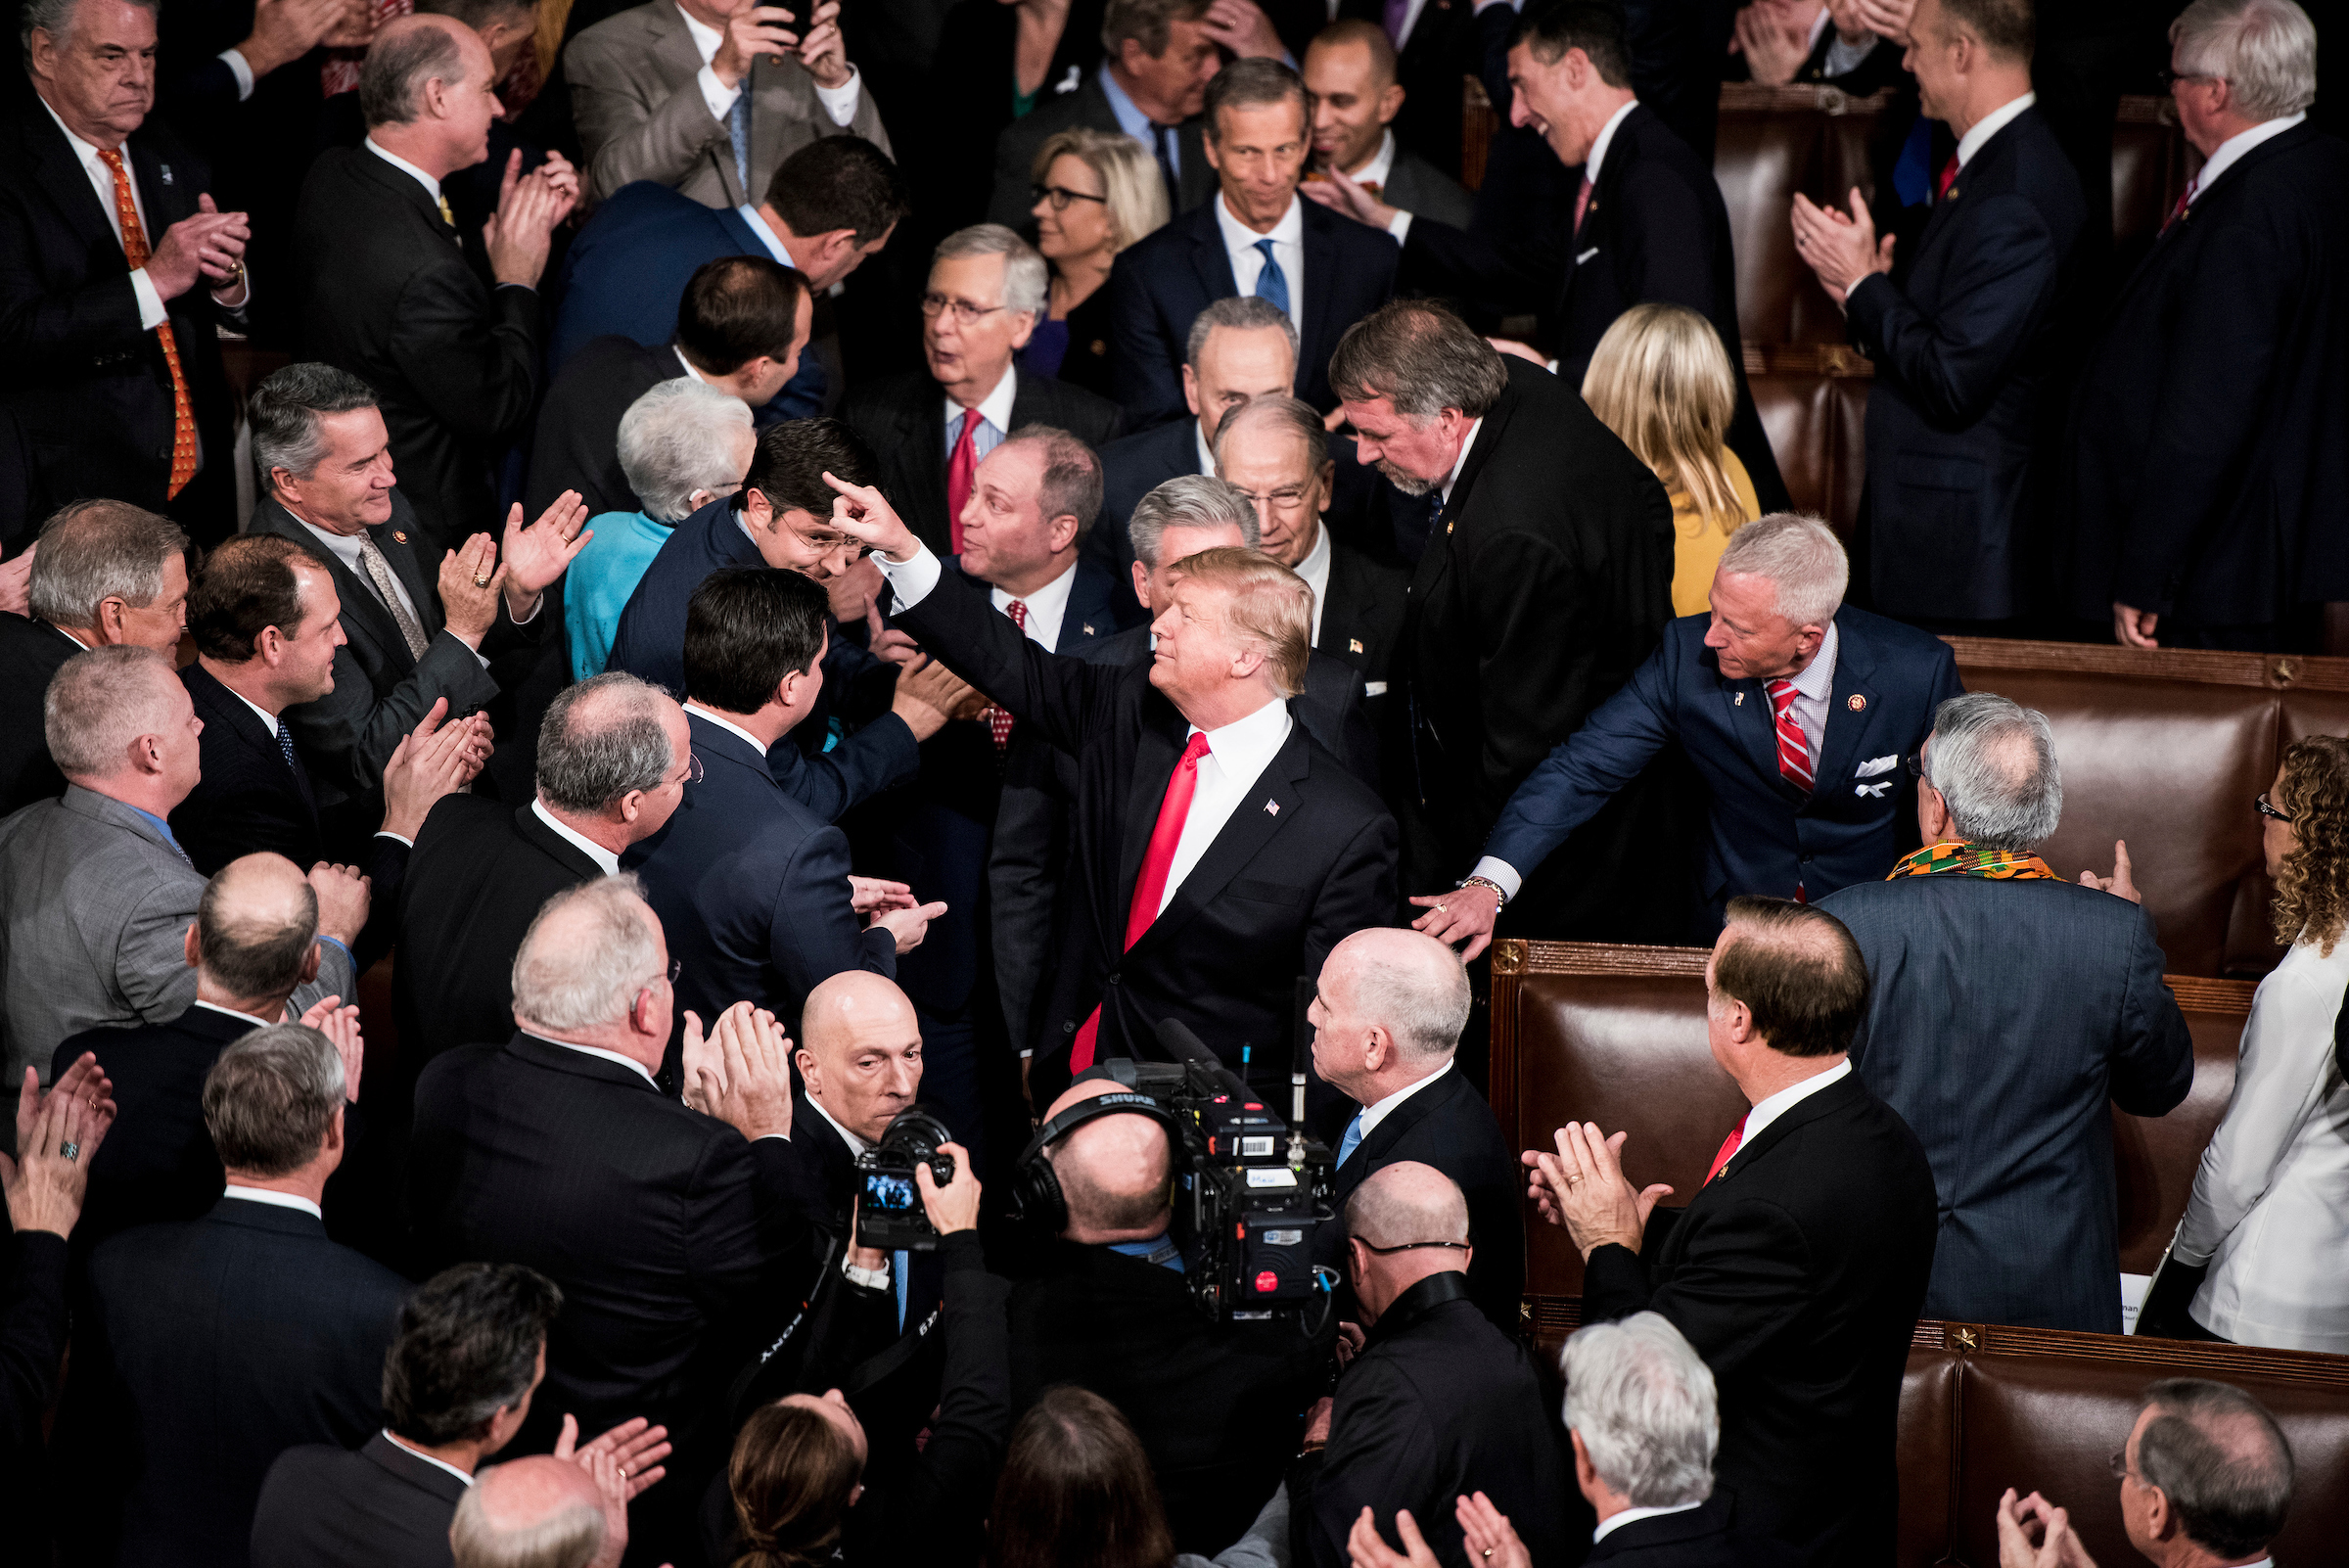 UNITED STATES - FEBRUARY 5: President Donald Trump arrives in the House chamber to deliver his State of the Union Address to a joint session of Congress in the Capitol on Tuesday, Feb. 5, 2019. (Photo By Bill Clark/CQ Roll Call)